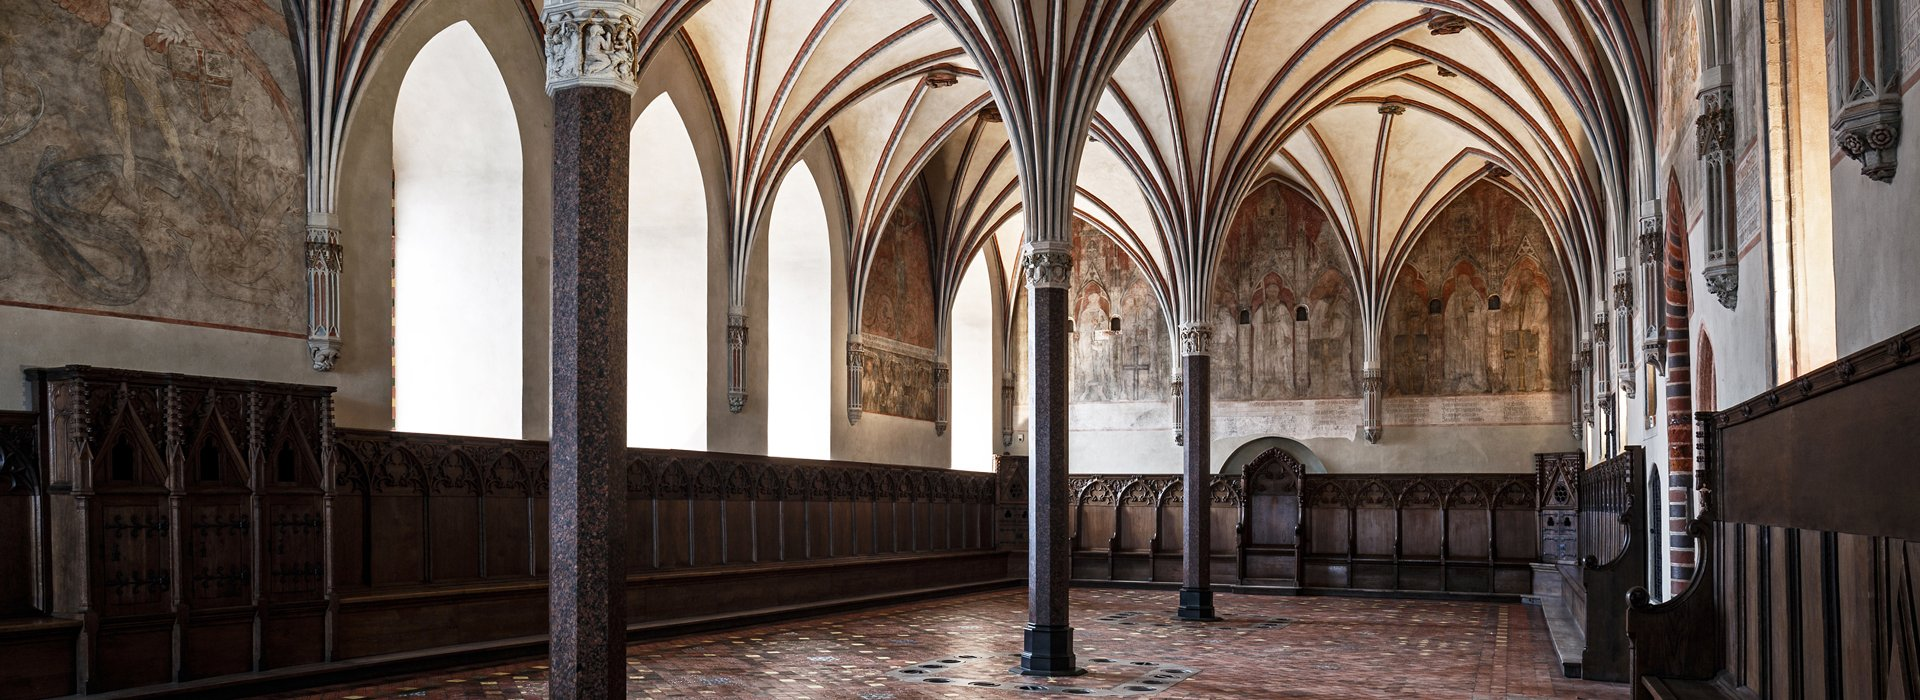 Ghotic interiors of Malbork castle